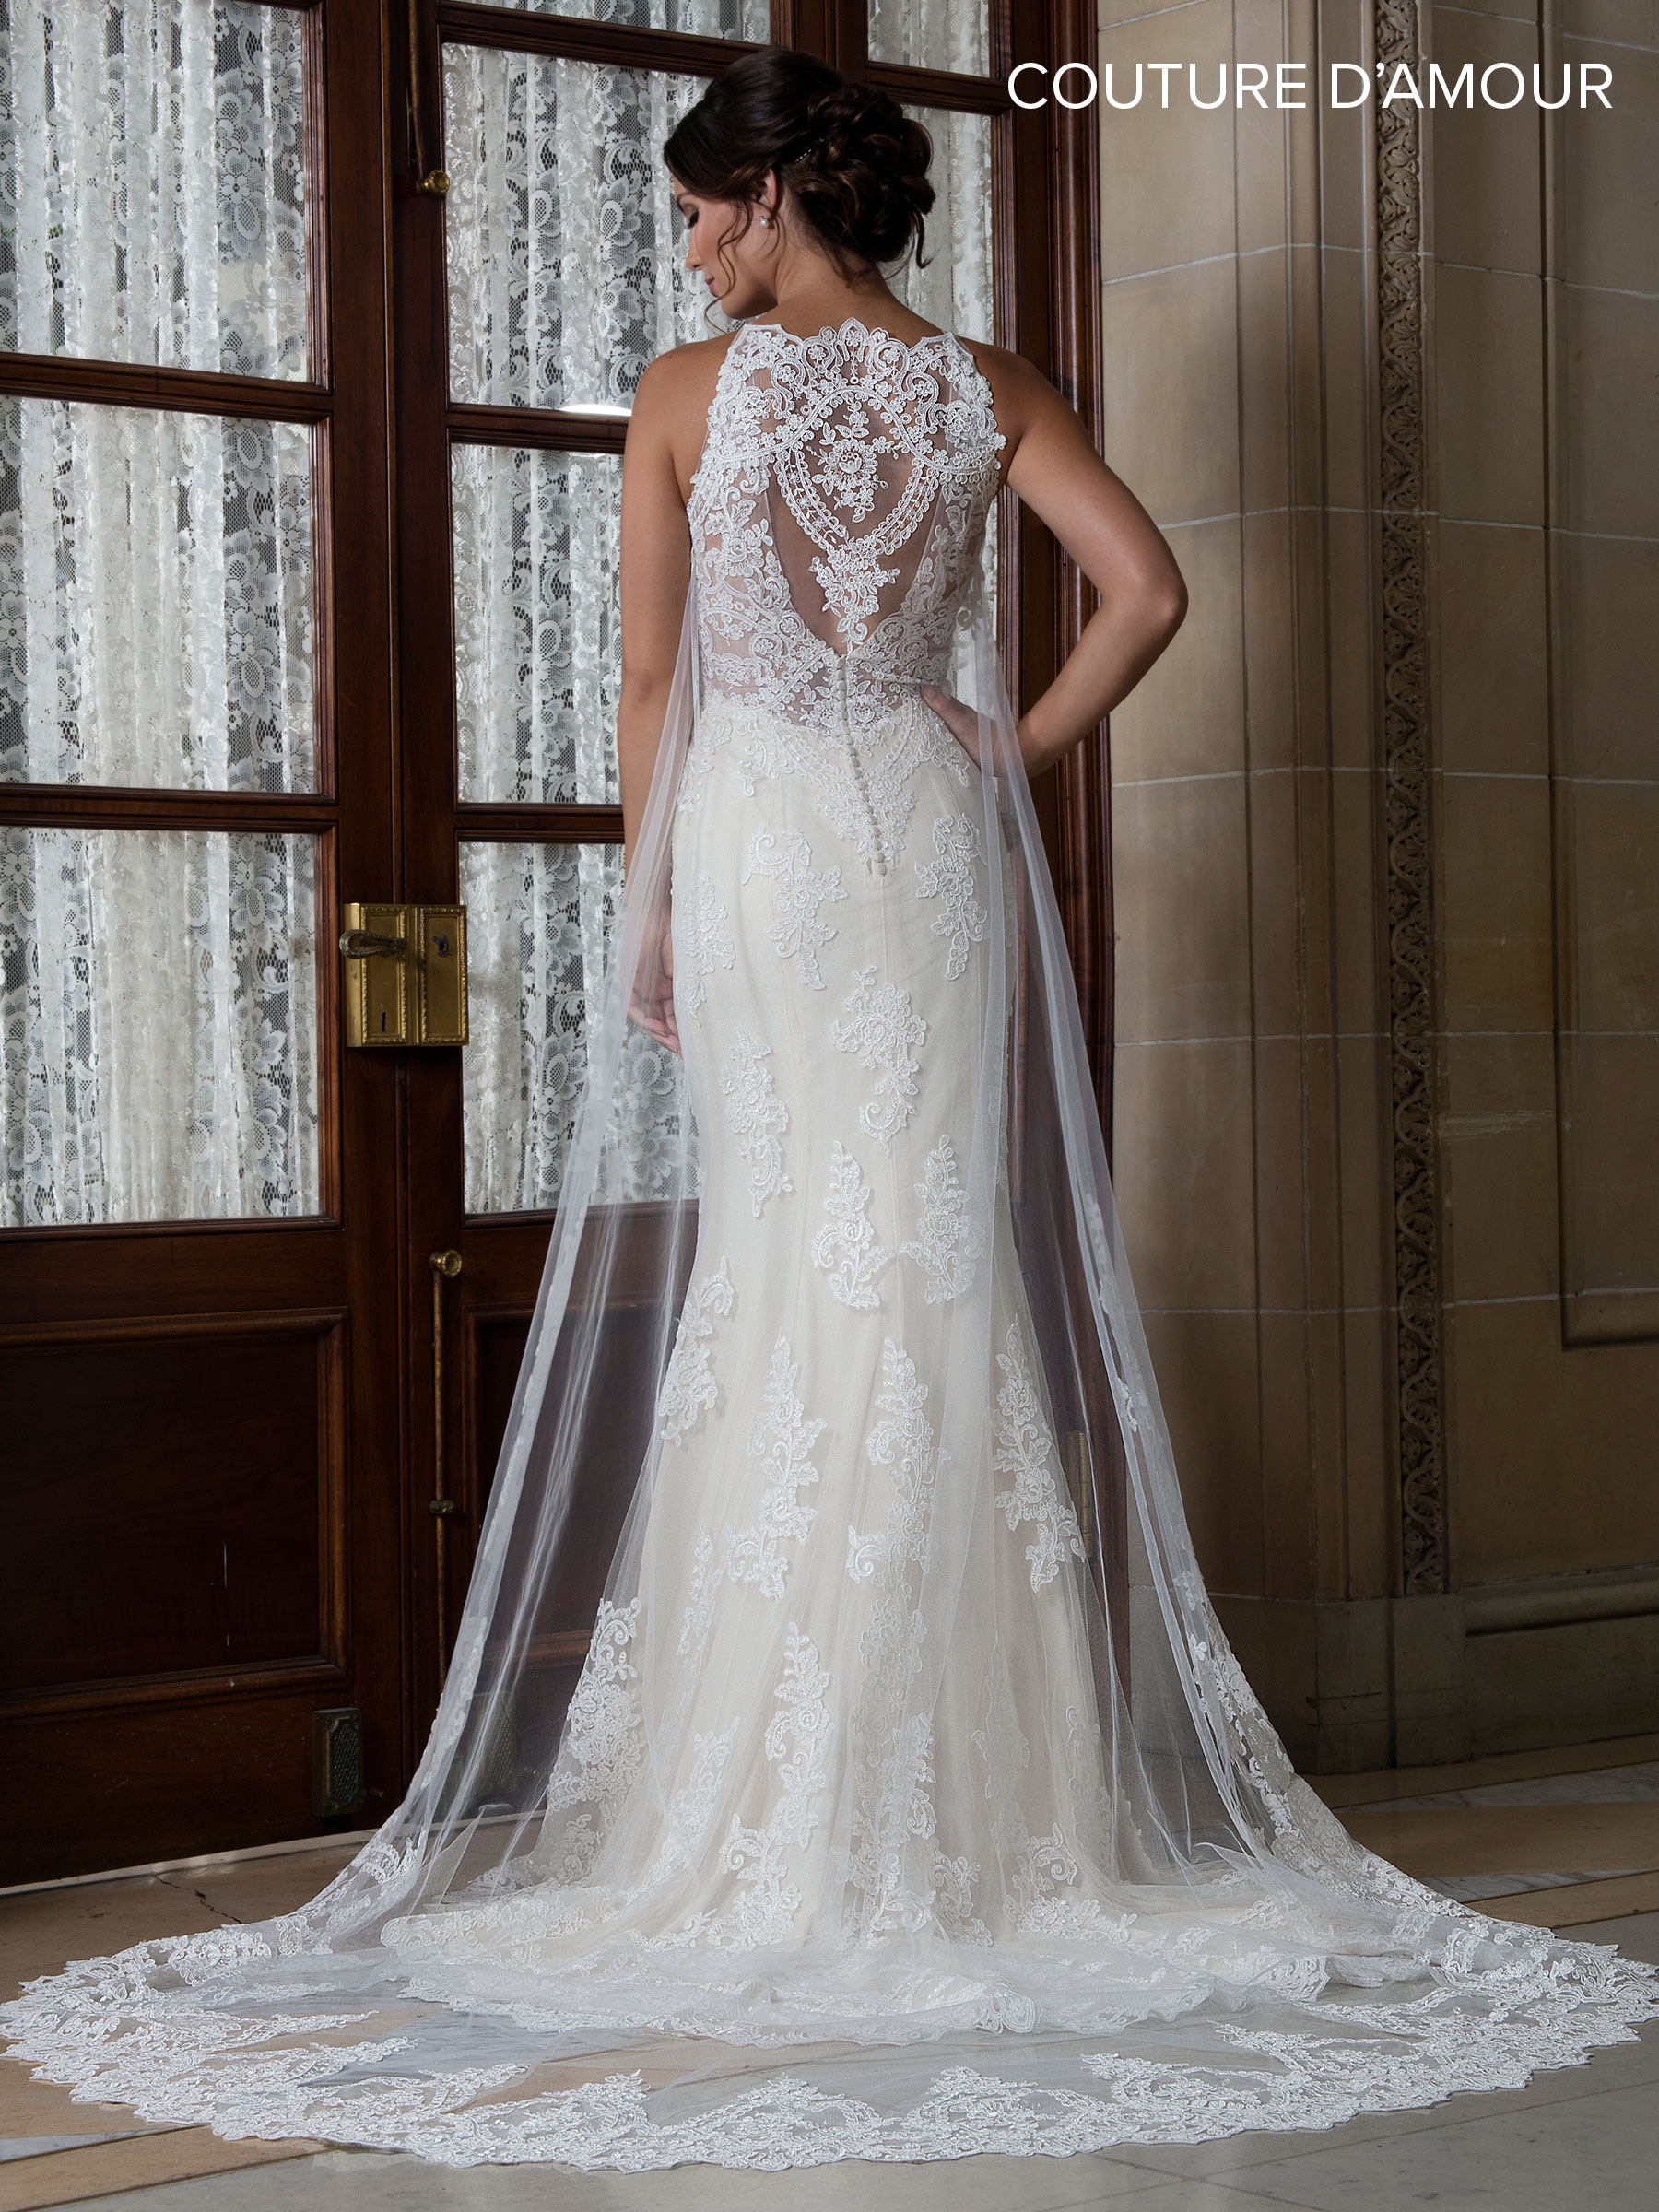 Couture Damour Bridal Dresses | Couture d'Amour | Style - MB4017